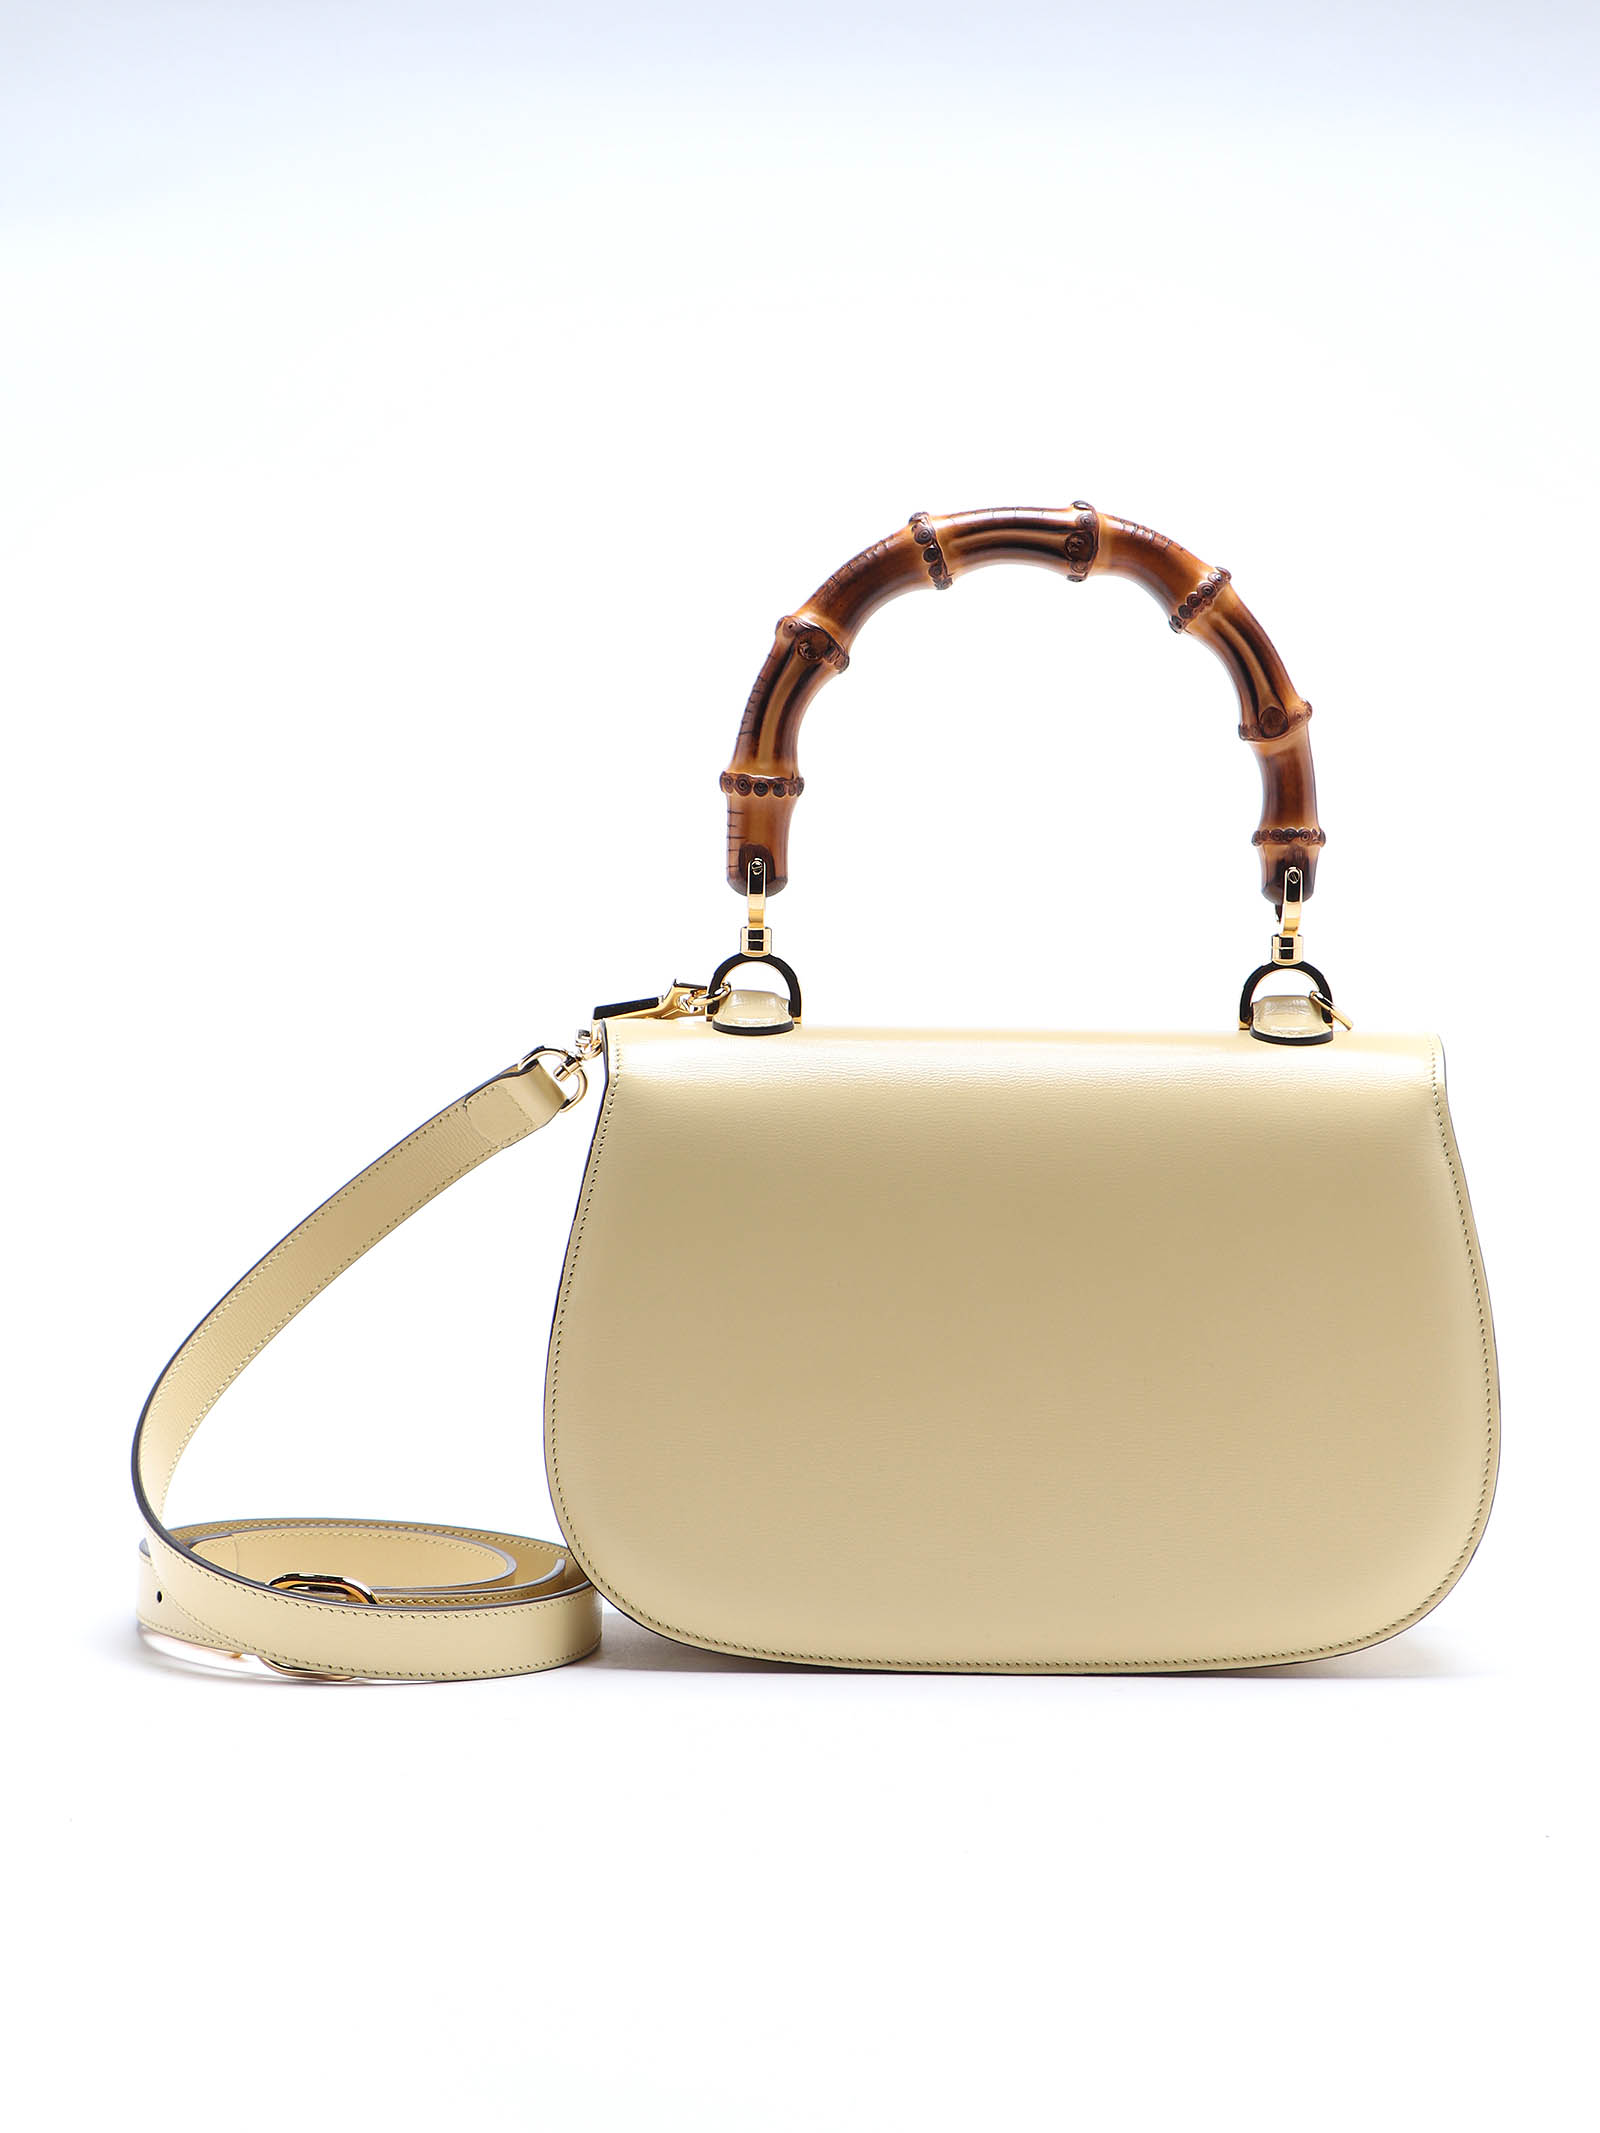 Picture of Gucci | Bamboo Bag